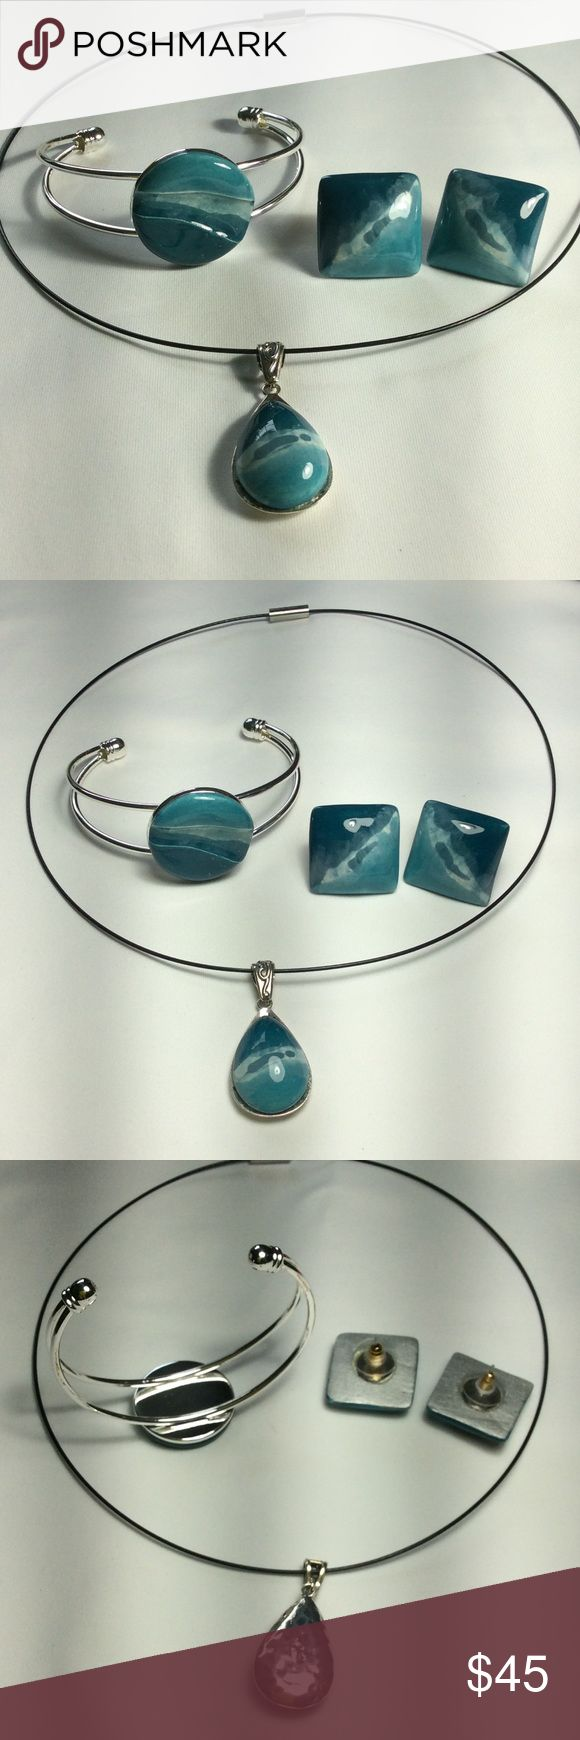 """3 pieces Jewelry These are handmade by me.  The """"stones"""" are ceramic.  They have been bisque fired in the kiln, then I applied various glazes to create the effect you see.  Then they were glaze fired.  A very strong glue was used to attach them to the bracelet and necklace blanks.  The colors are teal, white and turquoise.  Metal is not sterling. Necklace is 18"""" with a magnetic closure.  New.  Never worn.  All pieces will come in gift boxes. Accessorized by Ann Jewelry"""